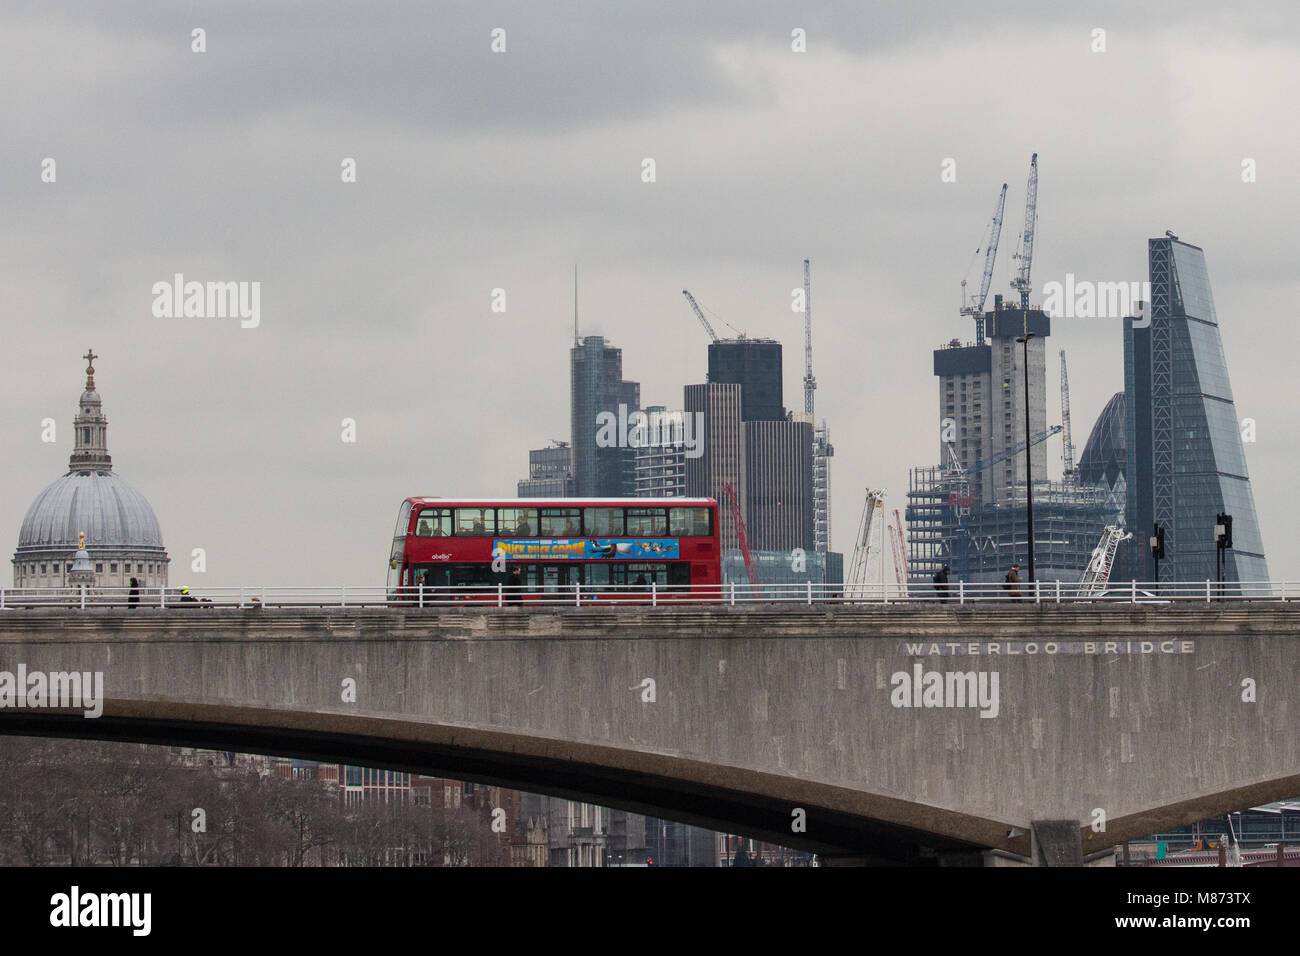 London, UK. 13th March, 2018. A doubledecker bus crosses Waterloo bridge on a cloudy day with St Paul's Cathedral - Stock Image